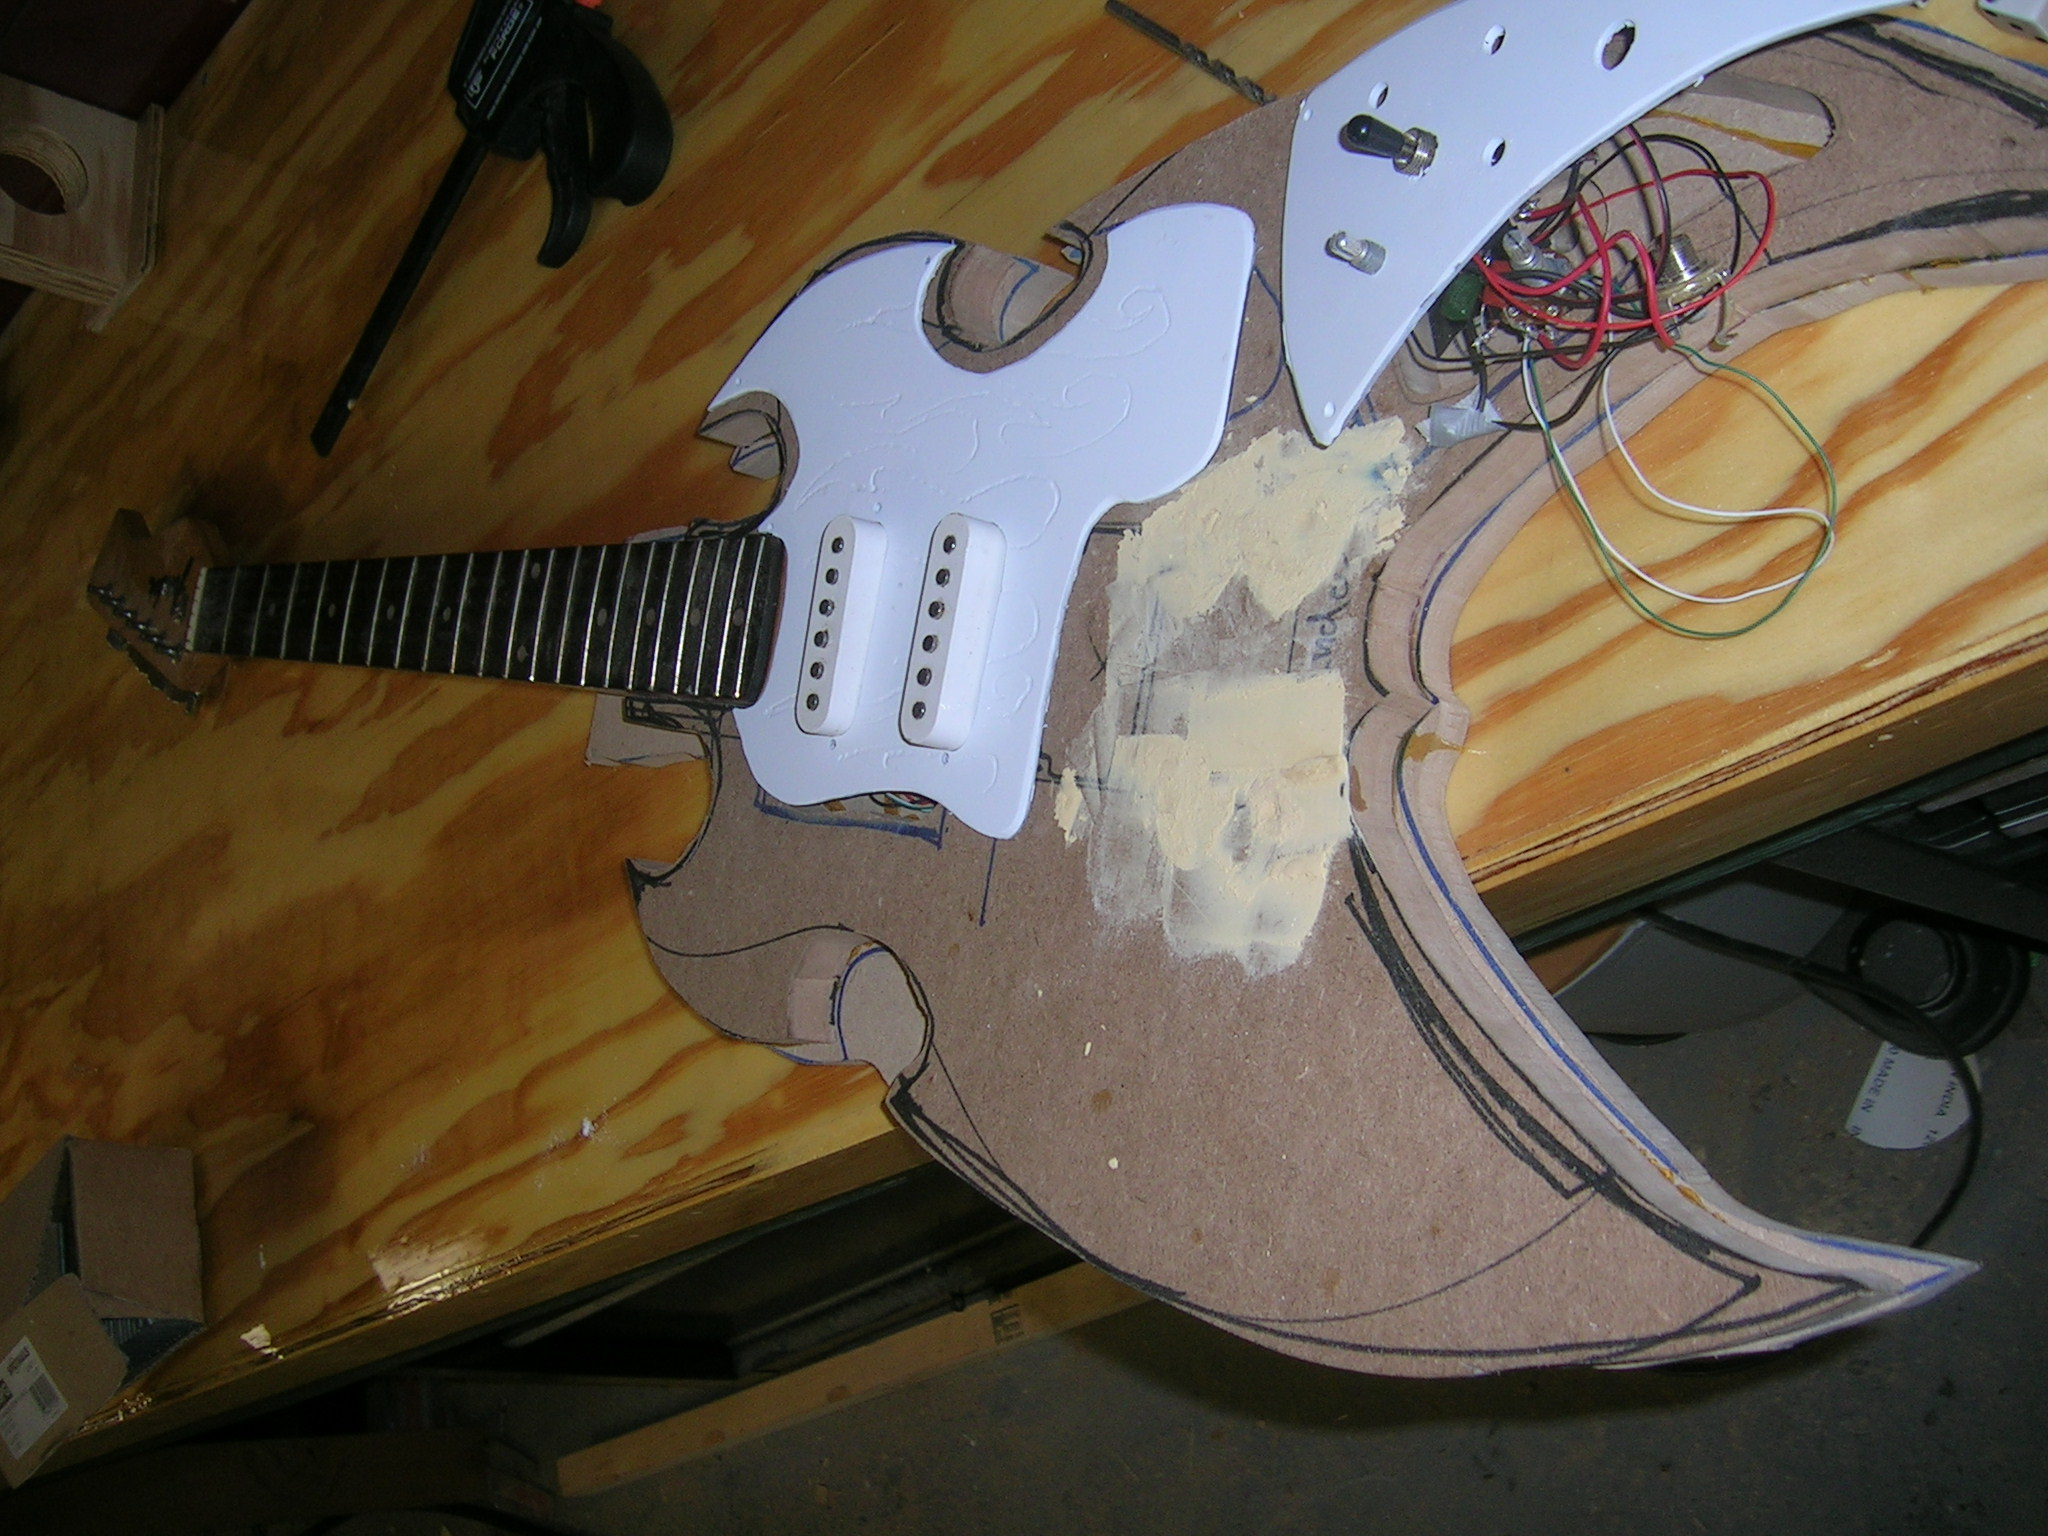 new look at an old wiring schemeand another cheap guitar makeover build a custom electric guitar [ 2048 x 1536 Pixel ]